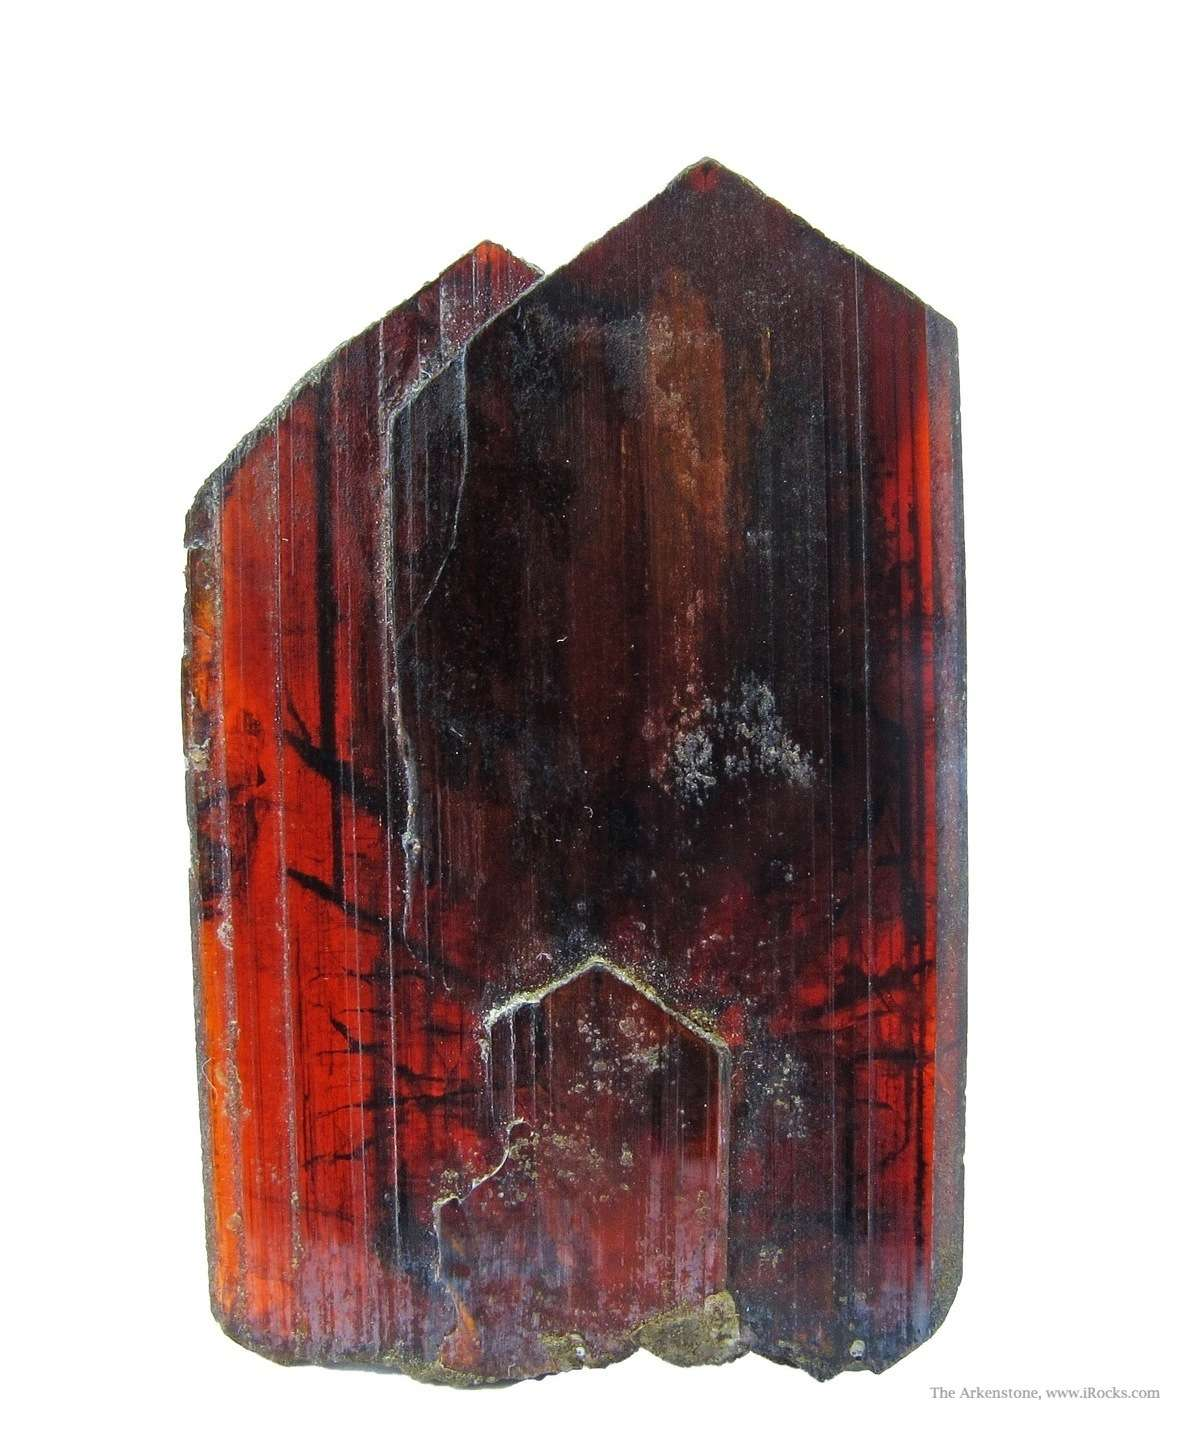 This pair intergrown Brookite blades formed translucent brownish red